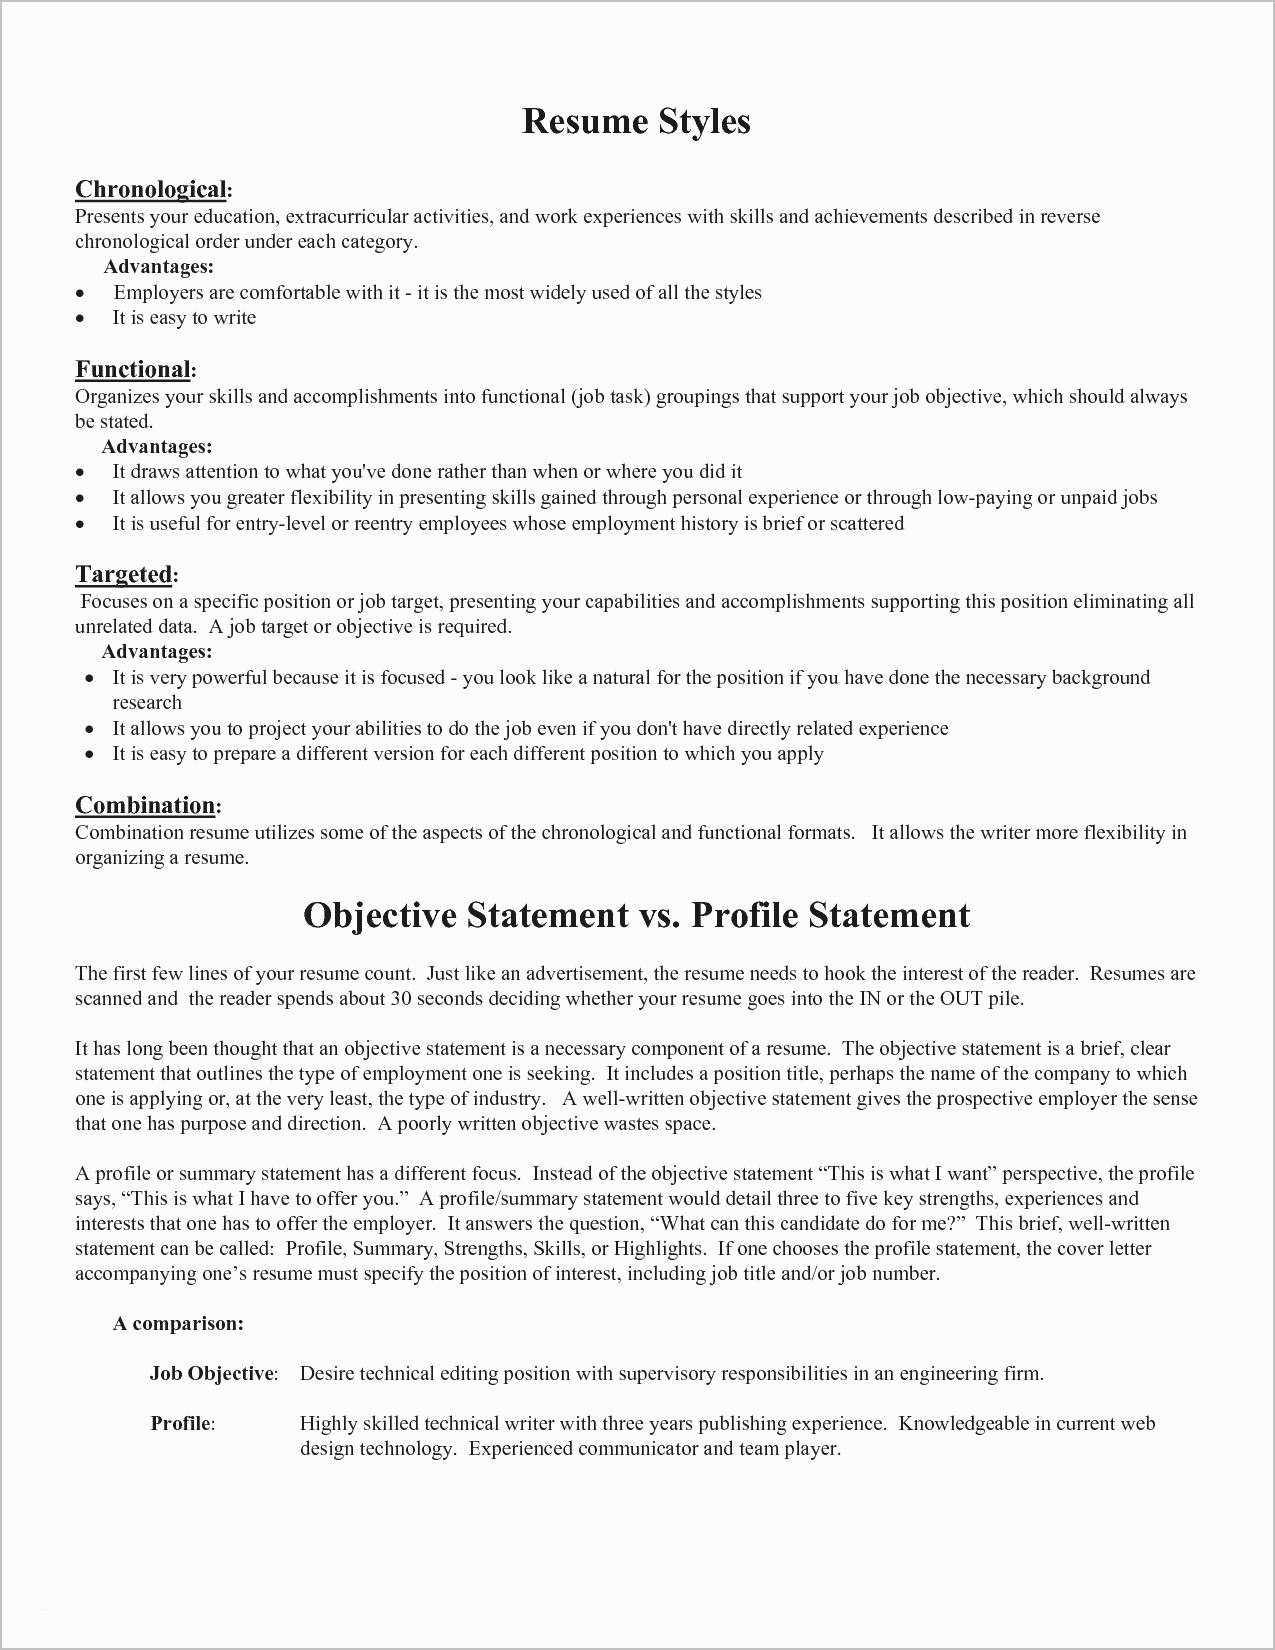 combination resume template for stay at home mom example-Example A bination Resume New Unique Examples Resumes Ecologist Resume 0d Resume Opening Statement bination 15-r